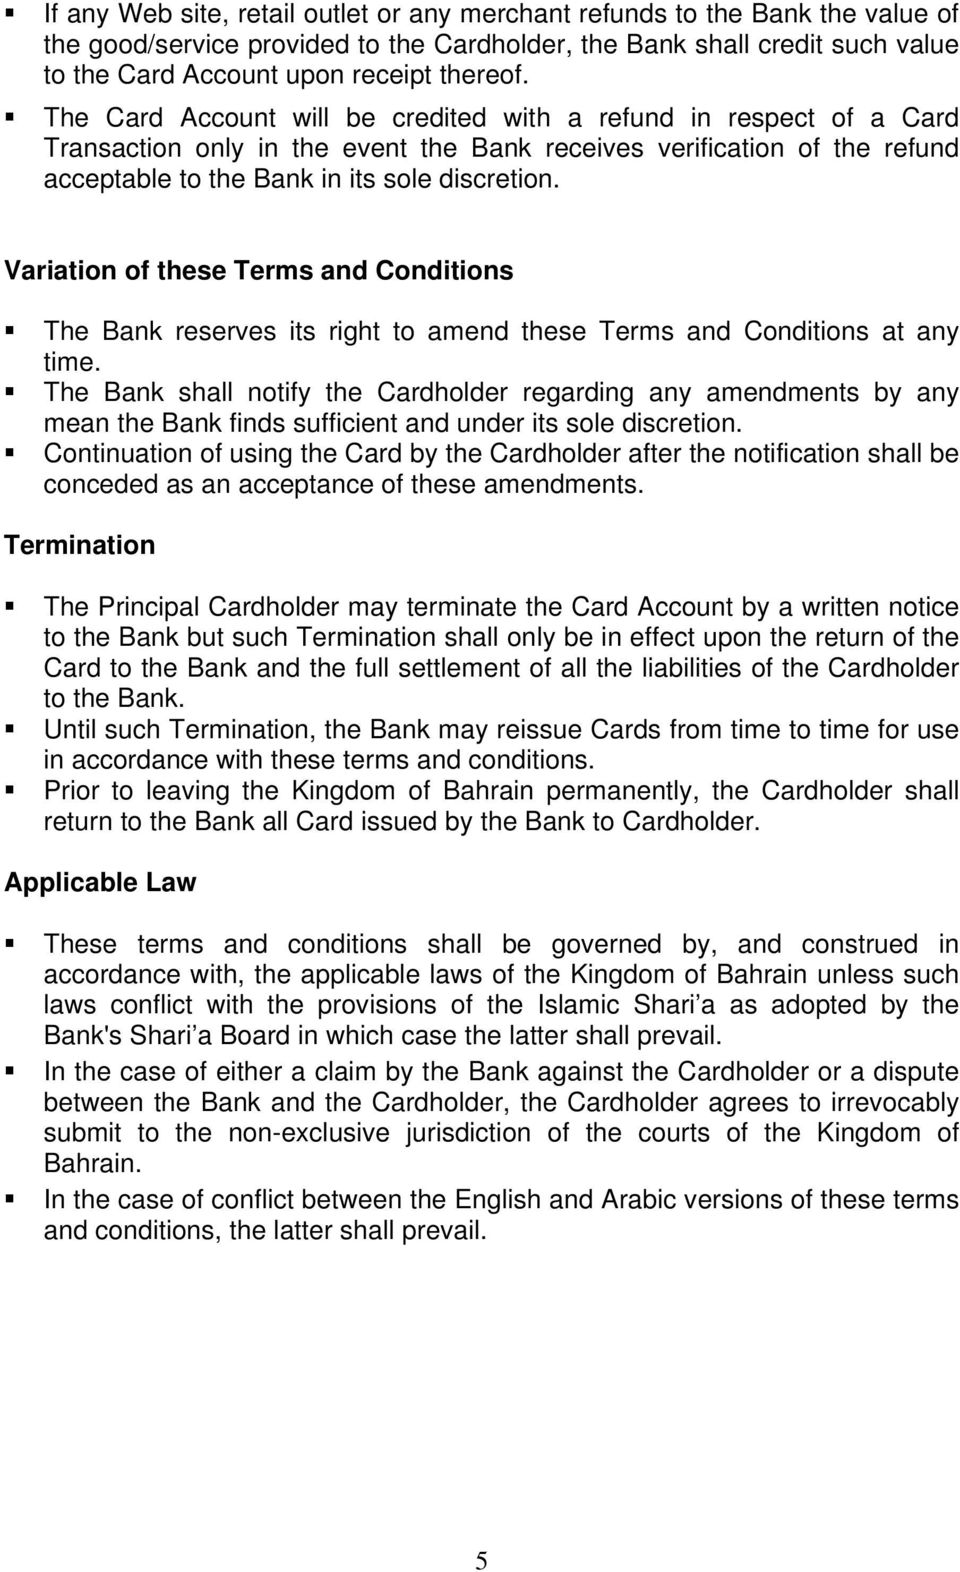 Variation of these Terms and Conditions The Bank reserves its right to amend these Terms and Conditions at any time.